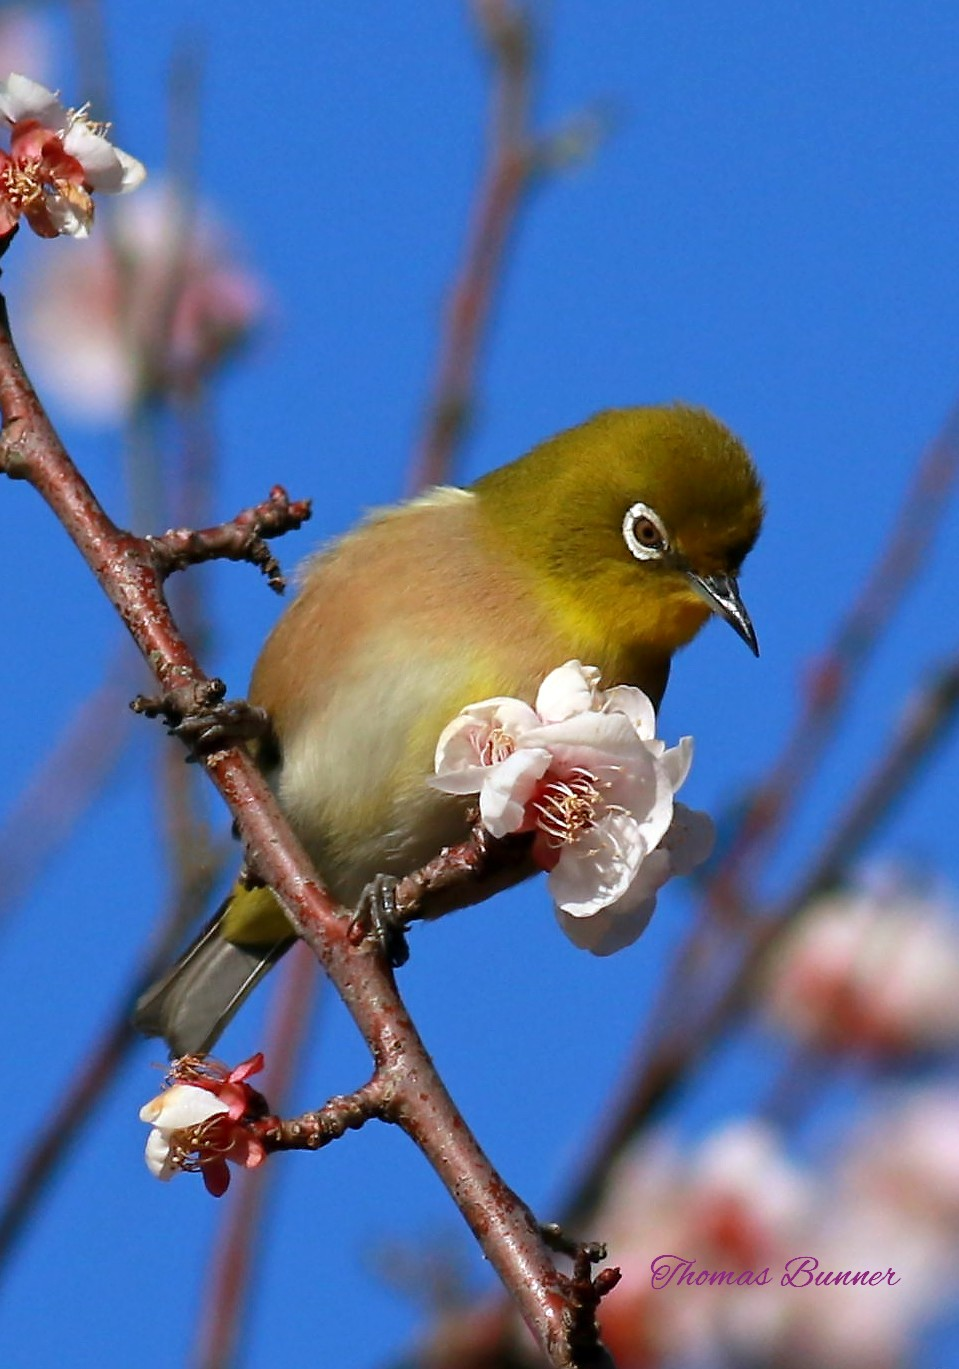 White-eye on plum blossom